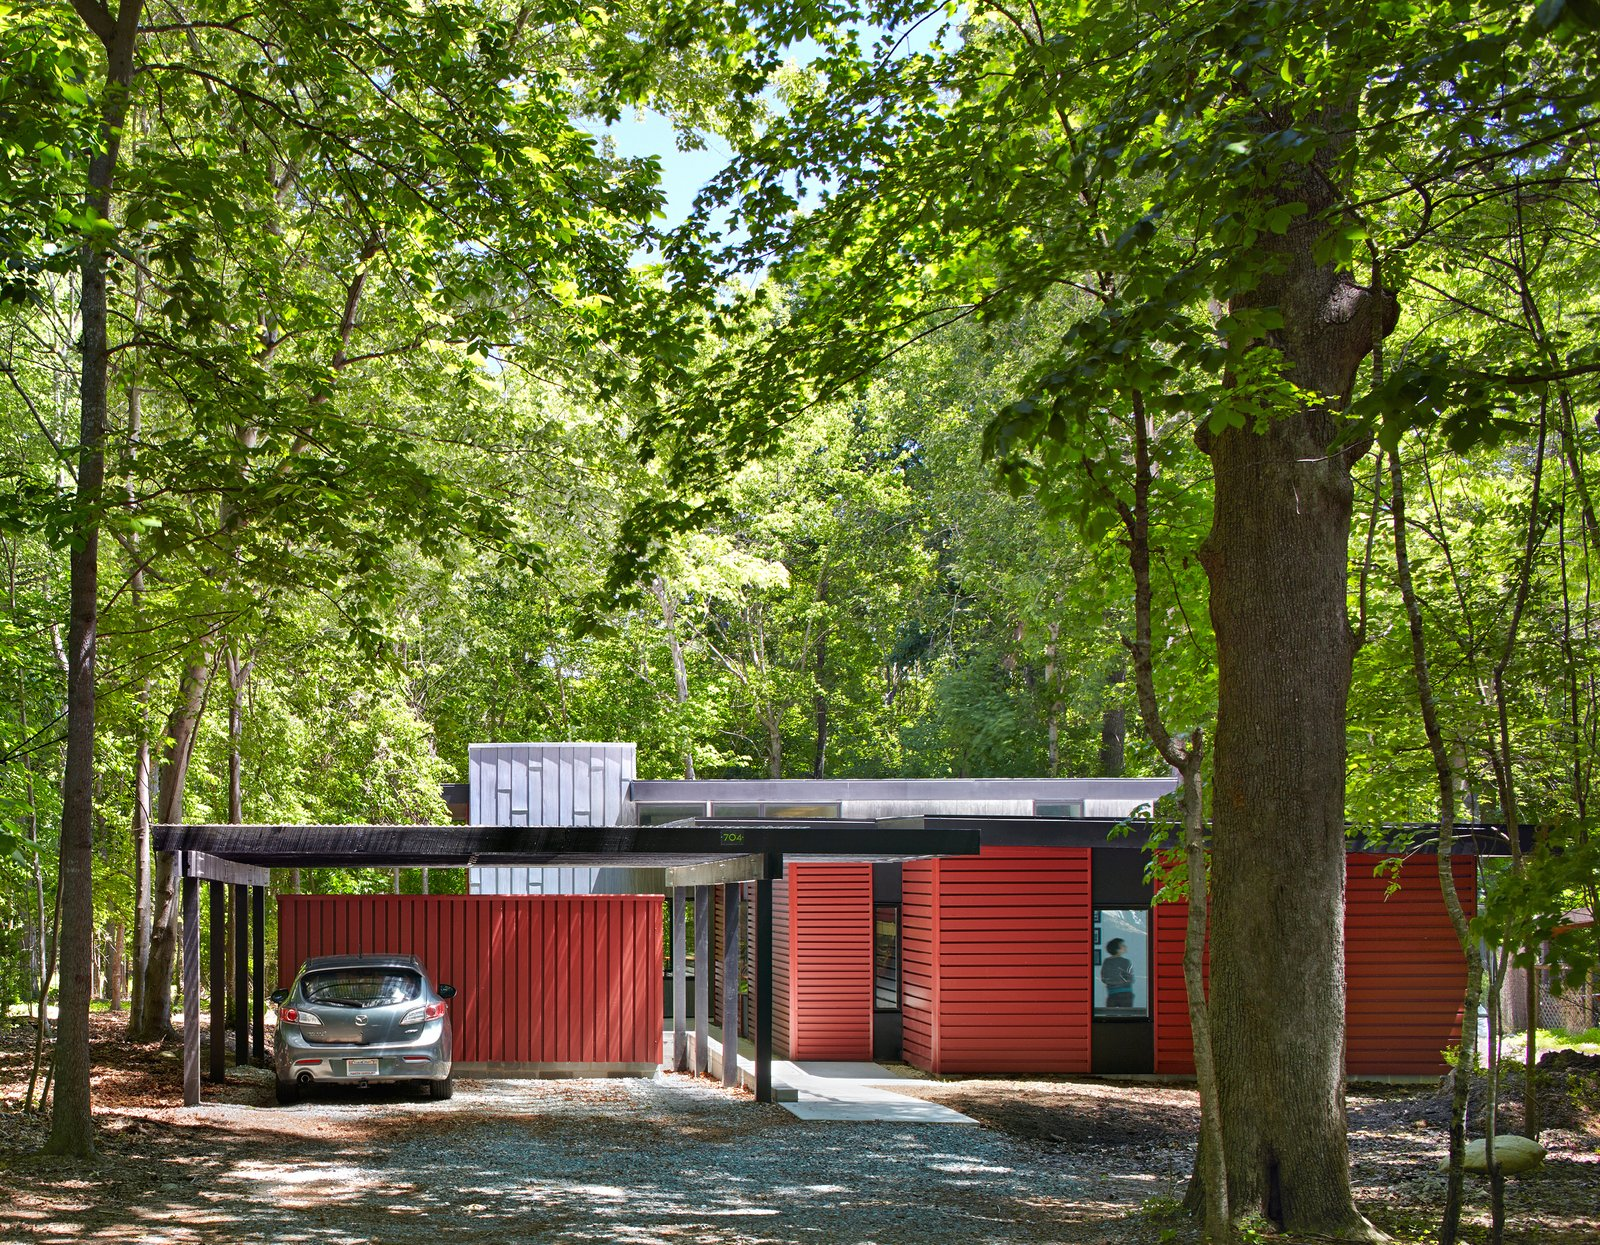 This Light-Filled, Metallic Home Embraces Its Wooded Site